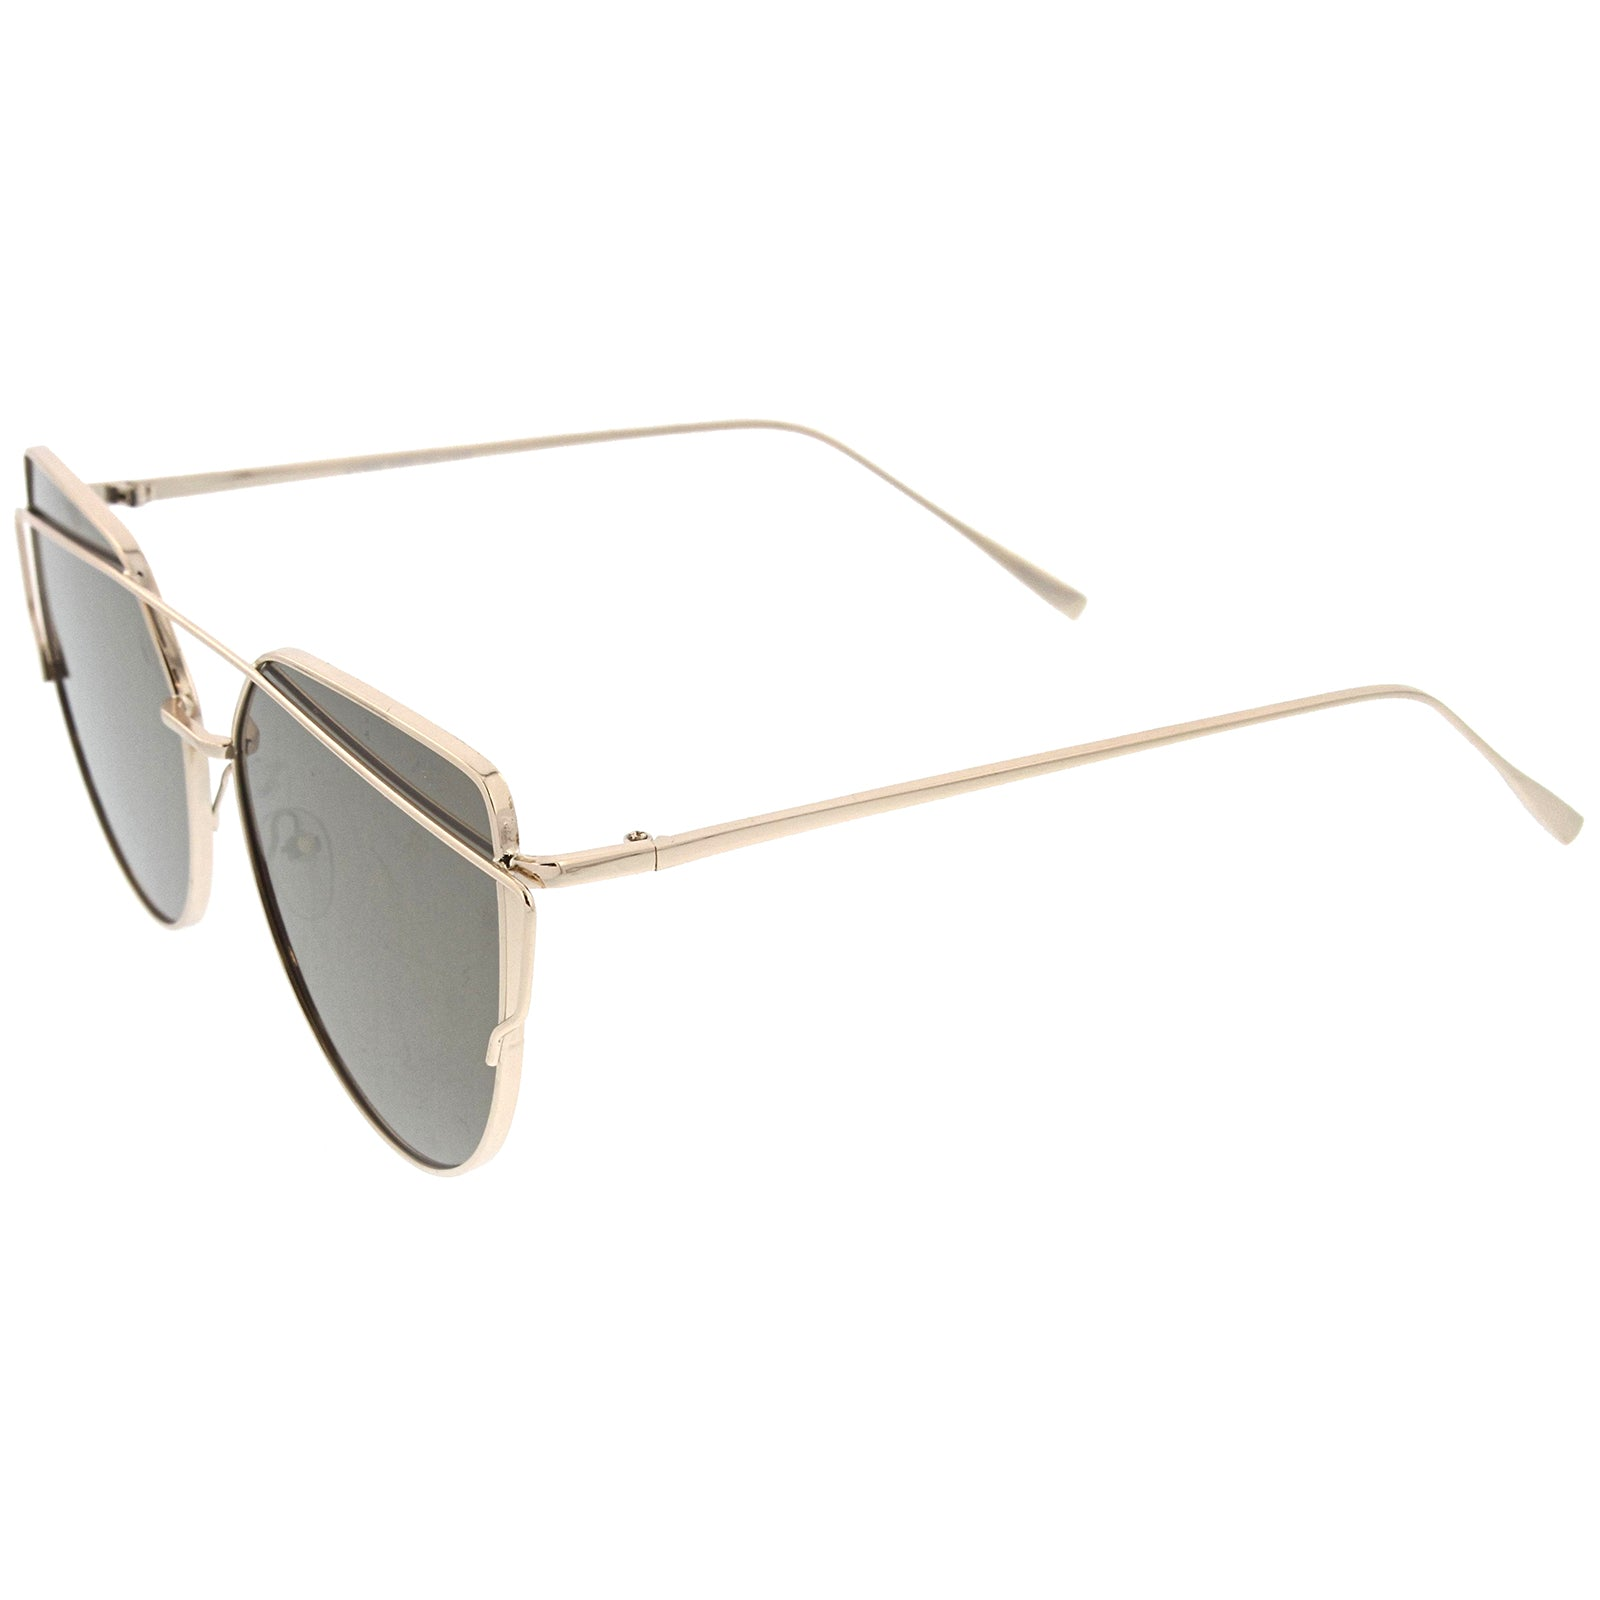 Oversize Metal Frame Thin Temple Color Mirror Flat Lens Aviator Sunglasses 62mm - sunglass.la - 19